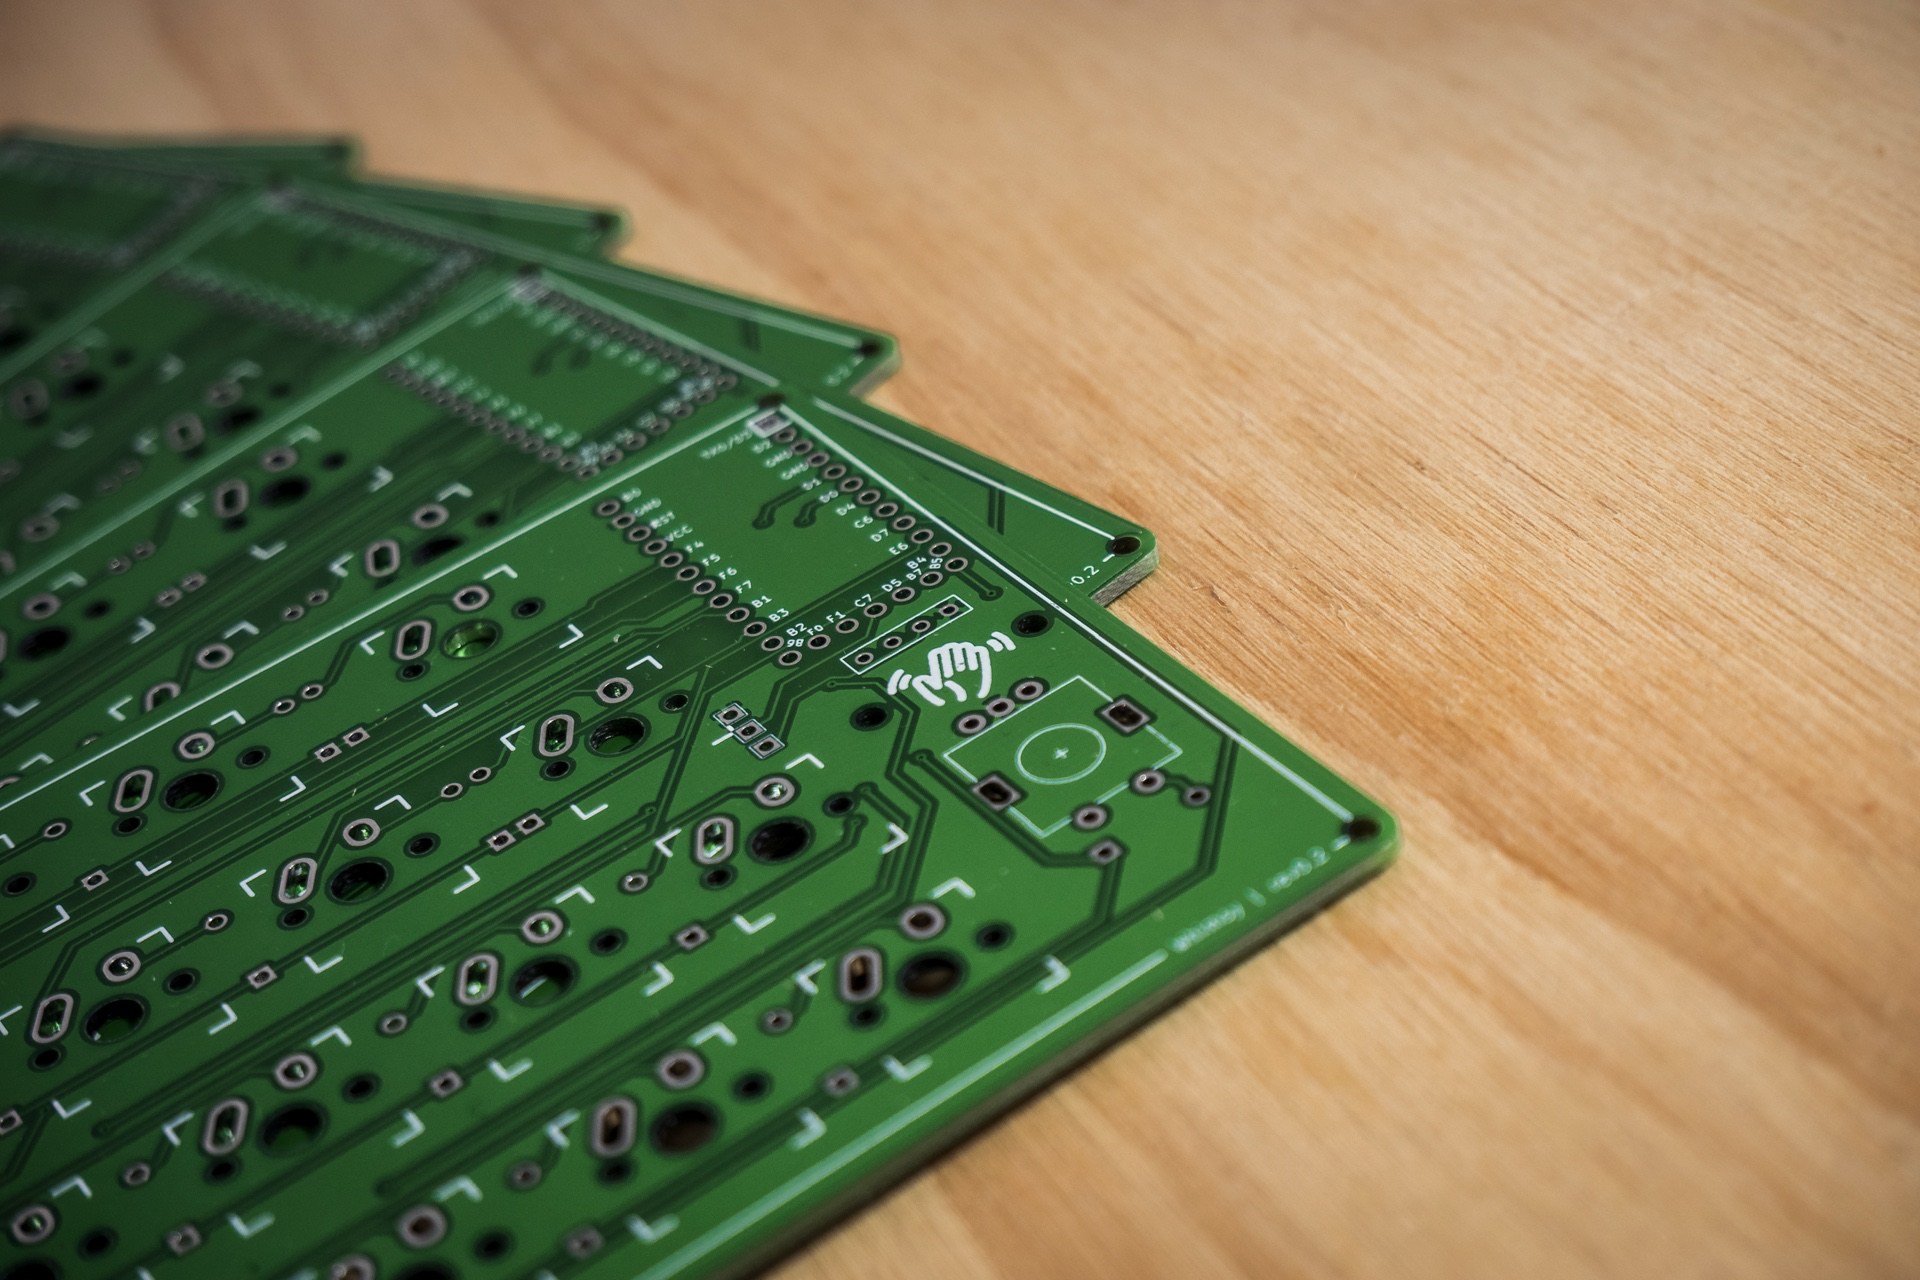 Original Whimsy PCBs